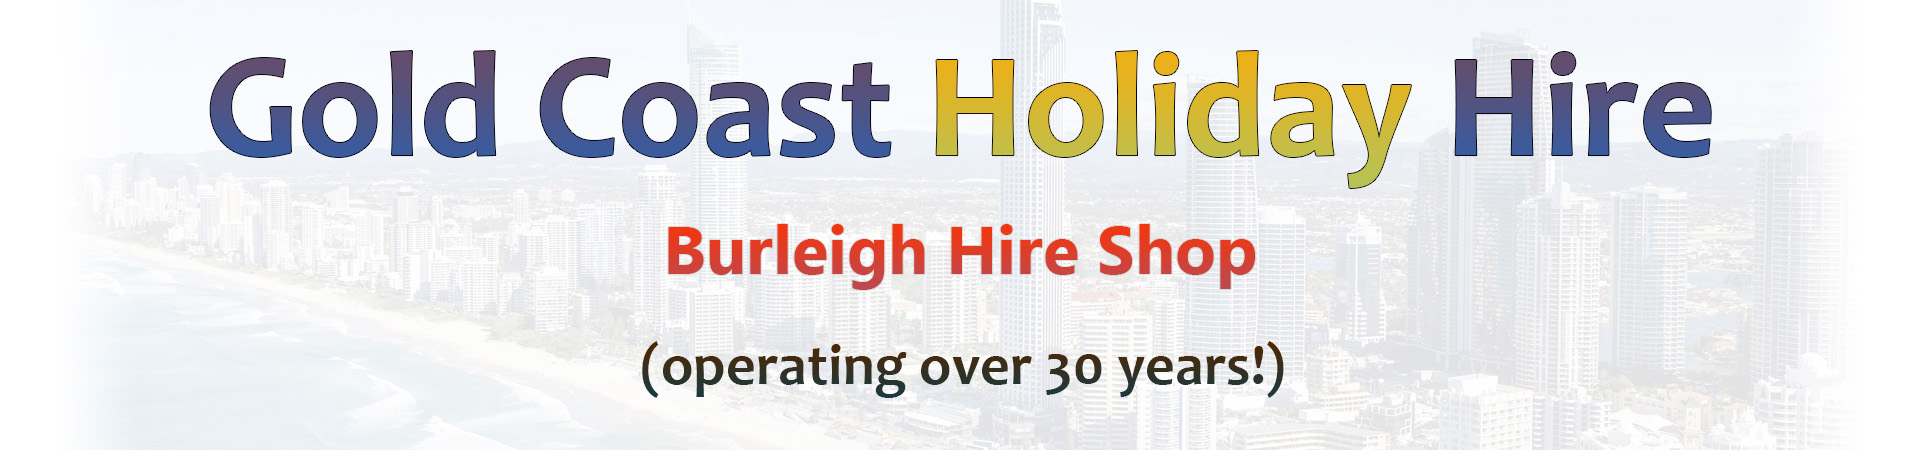 Gold Coast Holiday Hire Logo